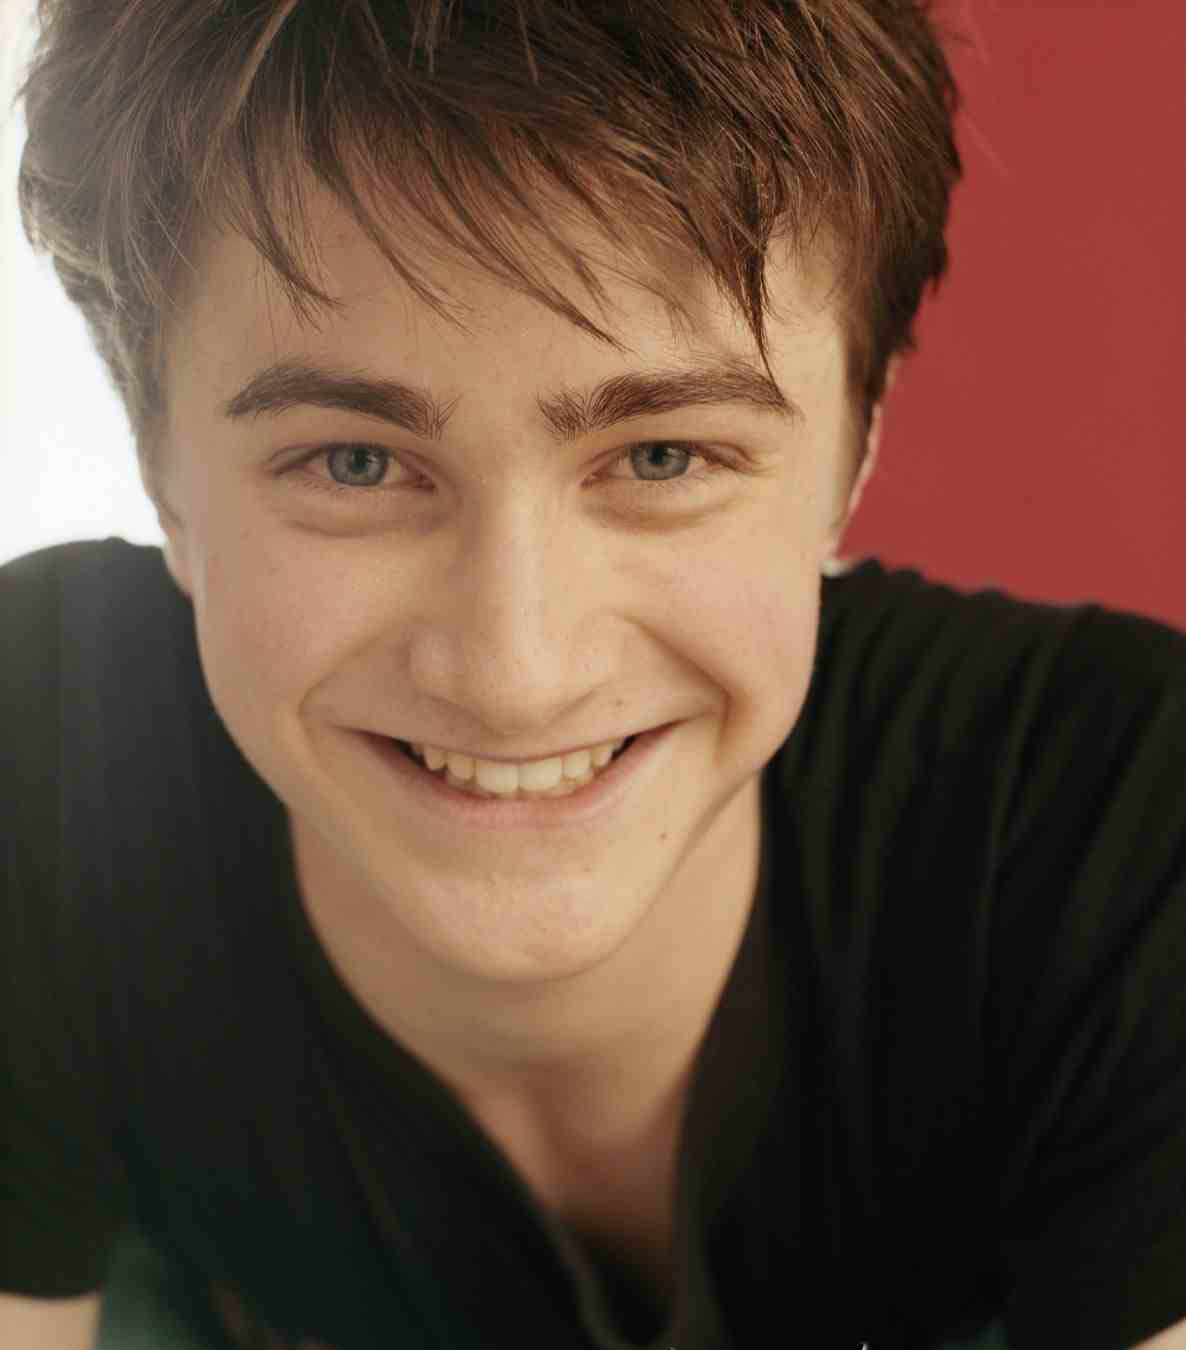 Http://awesomepeoplecomua/daniel Radcliffe/